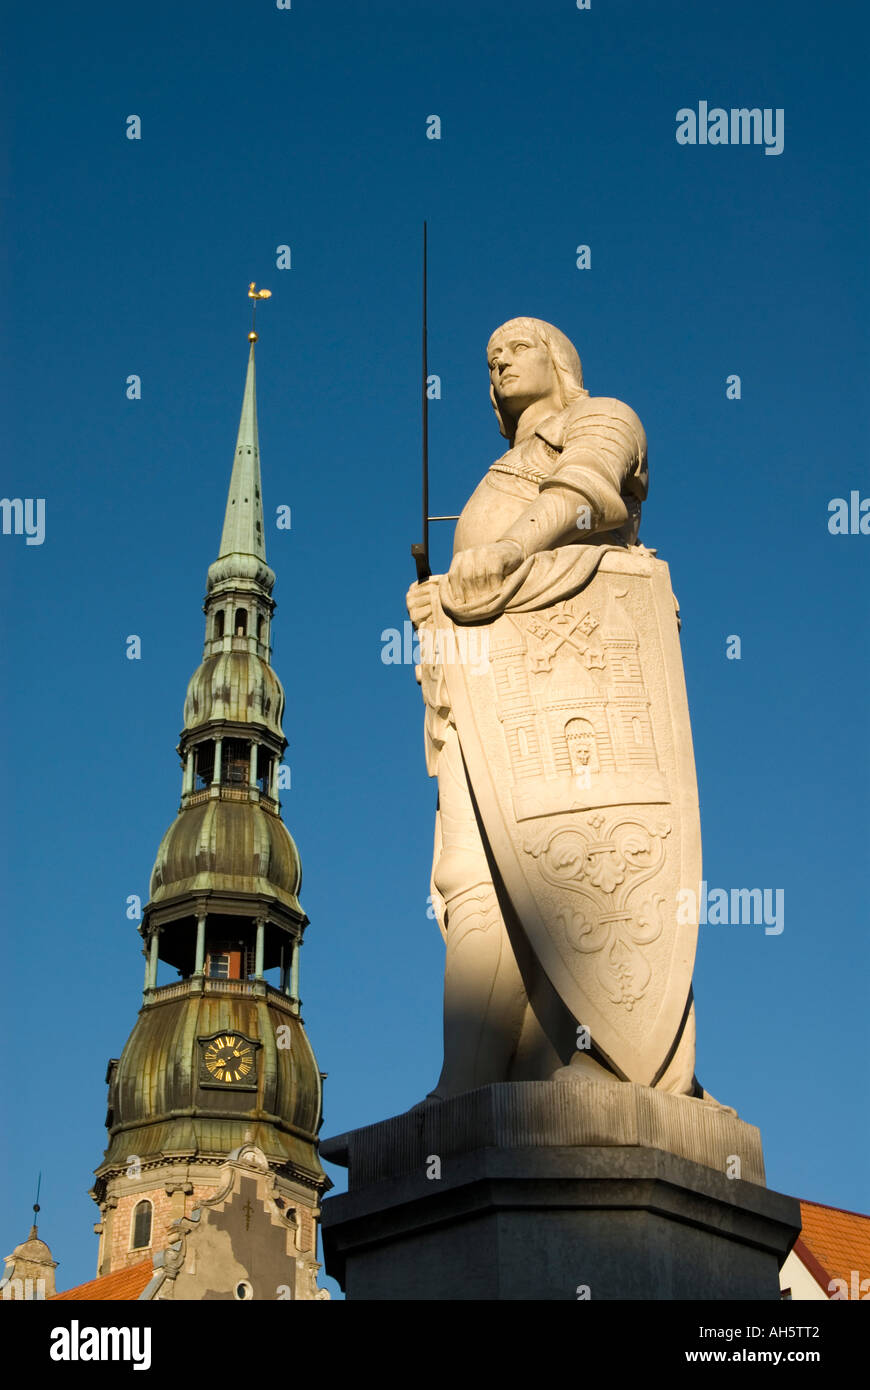 Statue of Roland on Ratslaukums in front the spire of St Peter's Church Riga Latvia - Stock Image